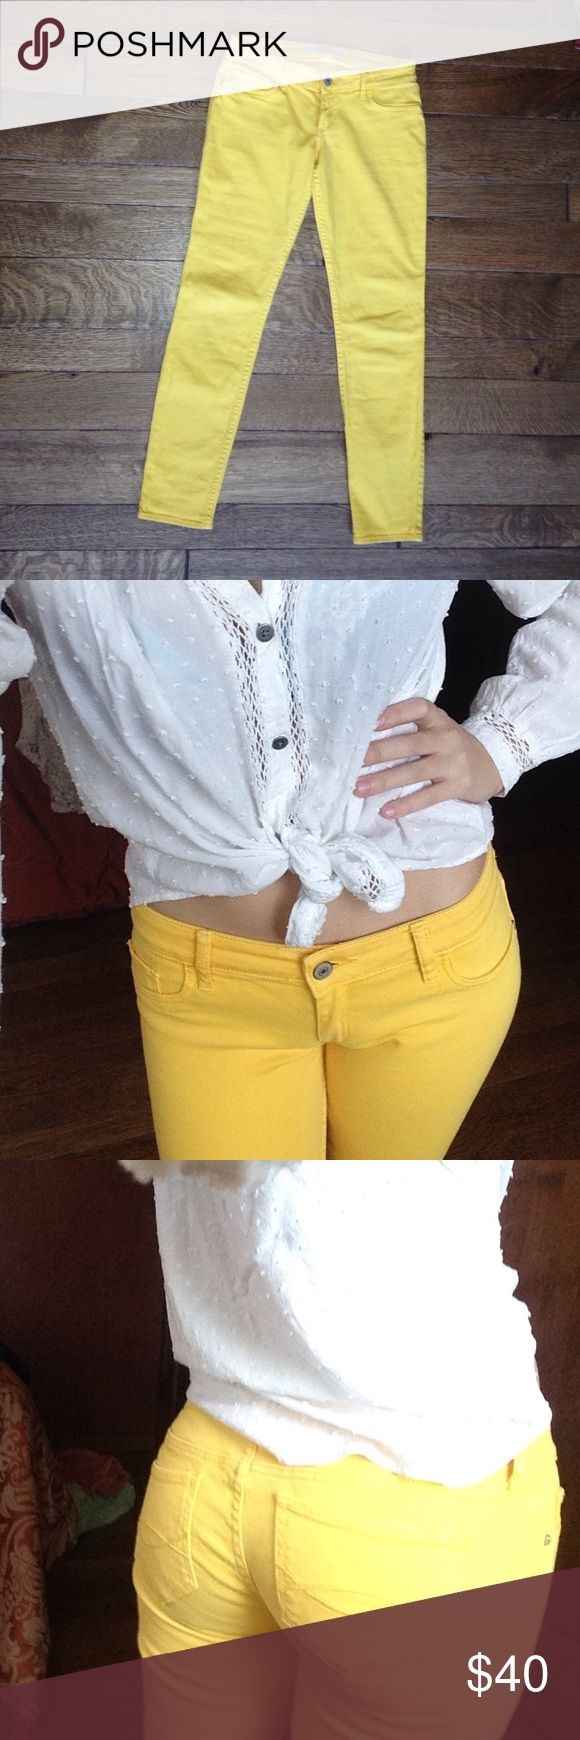 Yellow skinny jeans Low rise jeans. Not jeggings, stretch is minimal. Love them but they're too big since I lost weight, give them a good home! Abercrombie & Fitch Jeans Skinny